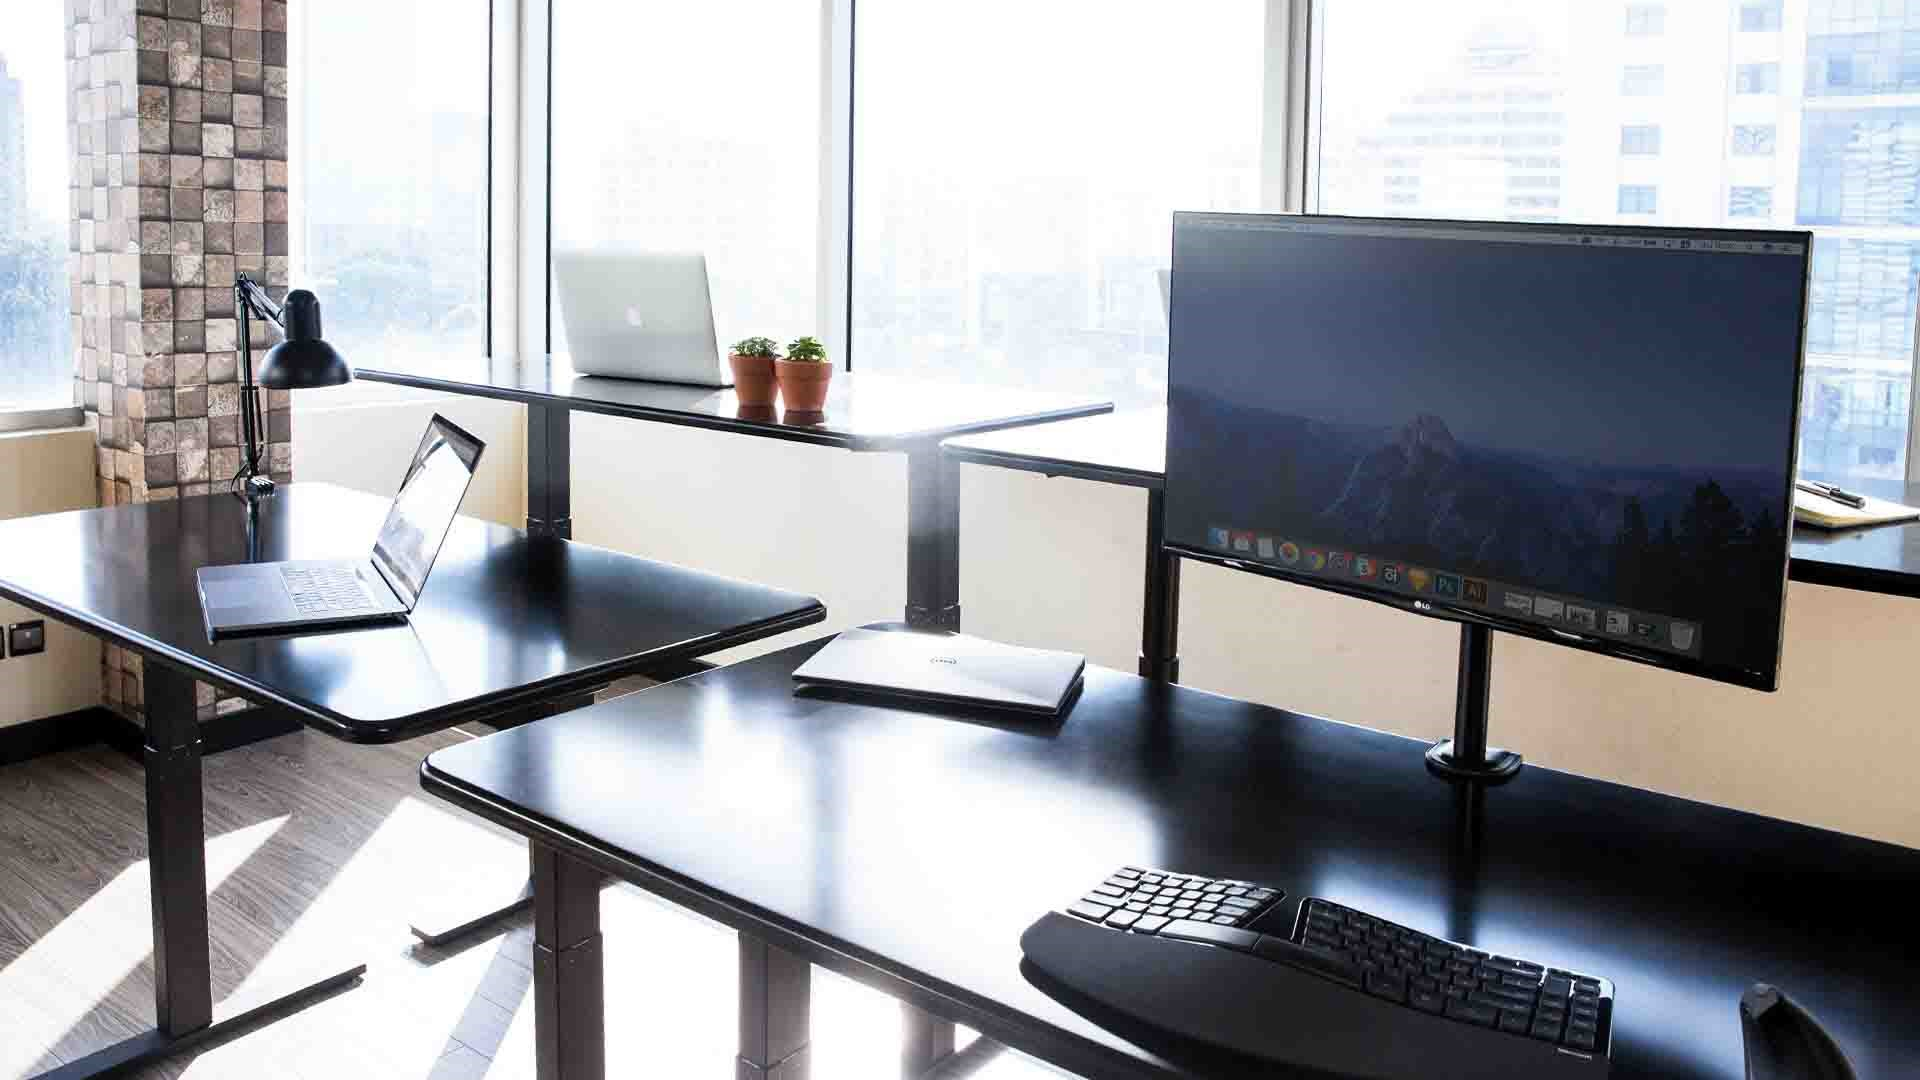 Why You Should Upgrade Your Company's Office Furniture to Benefit Your Employees - Image 3